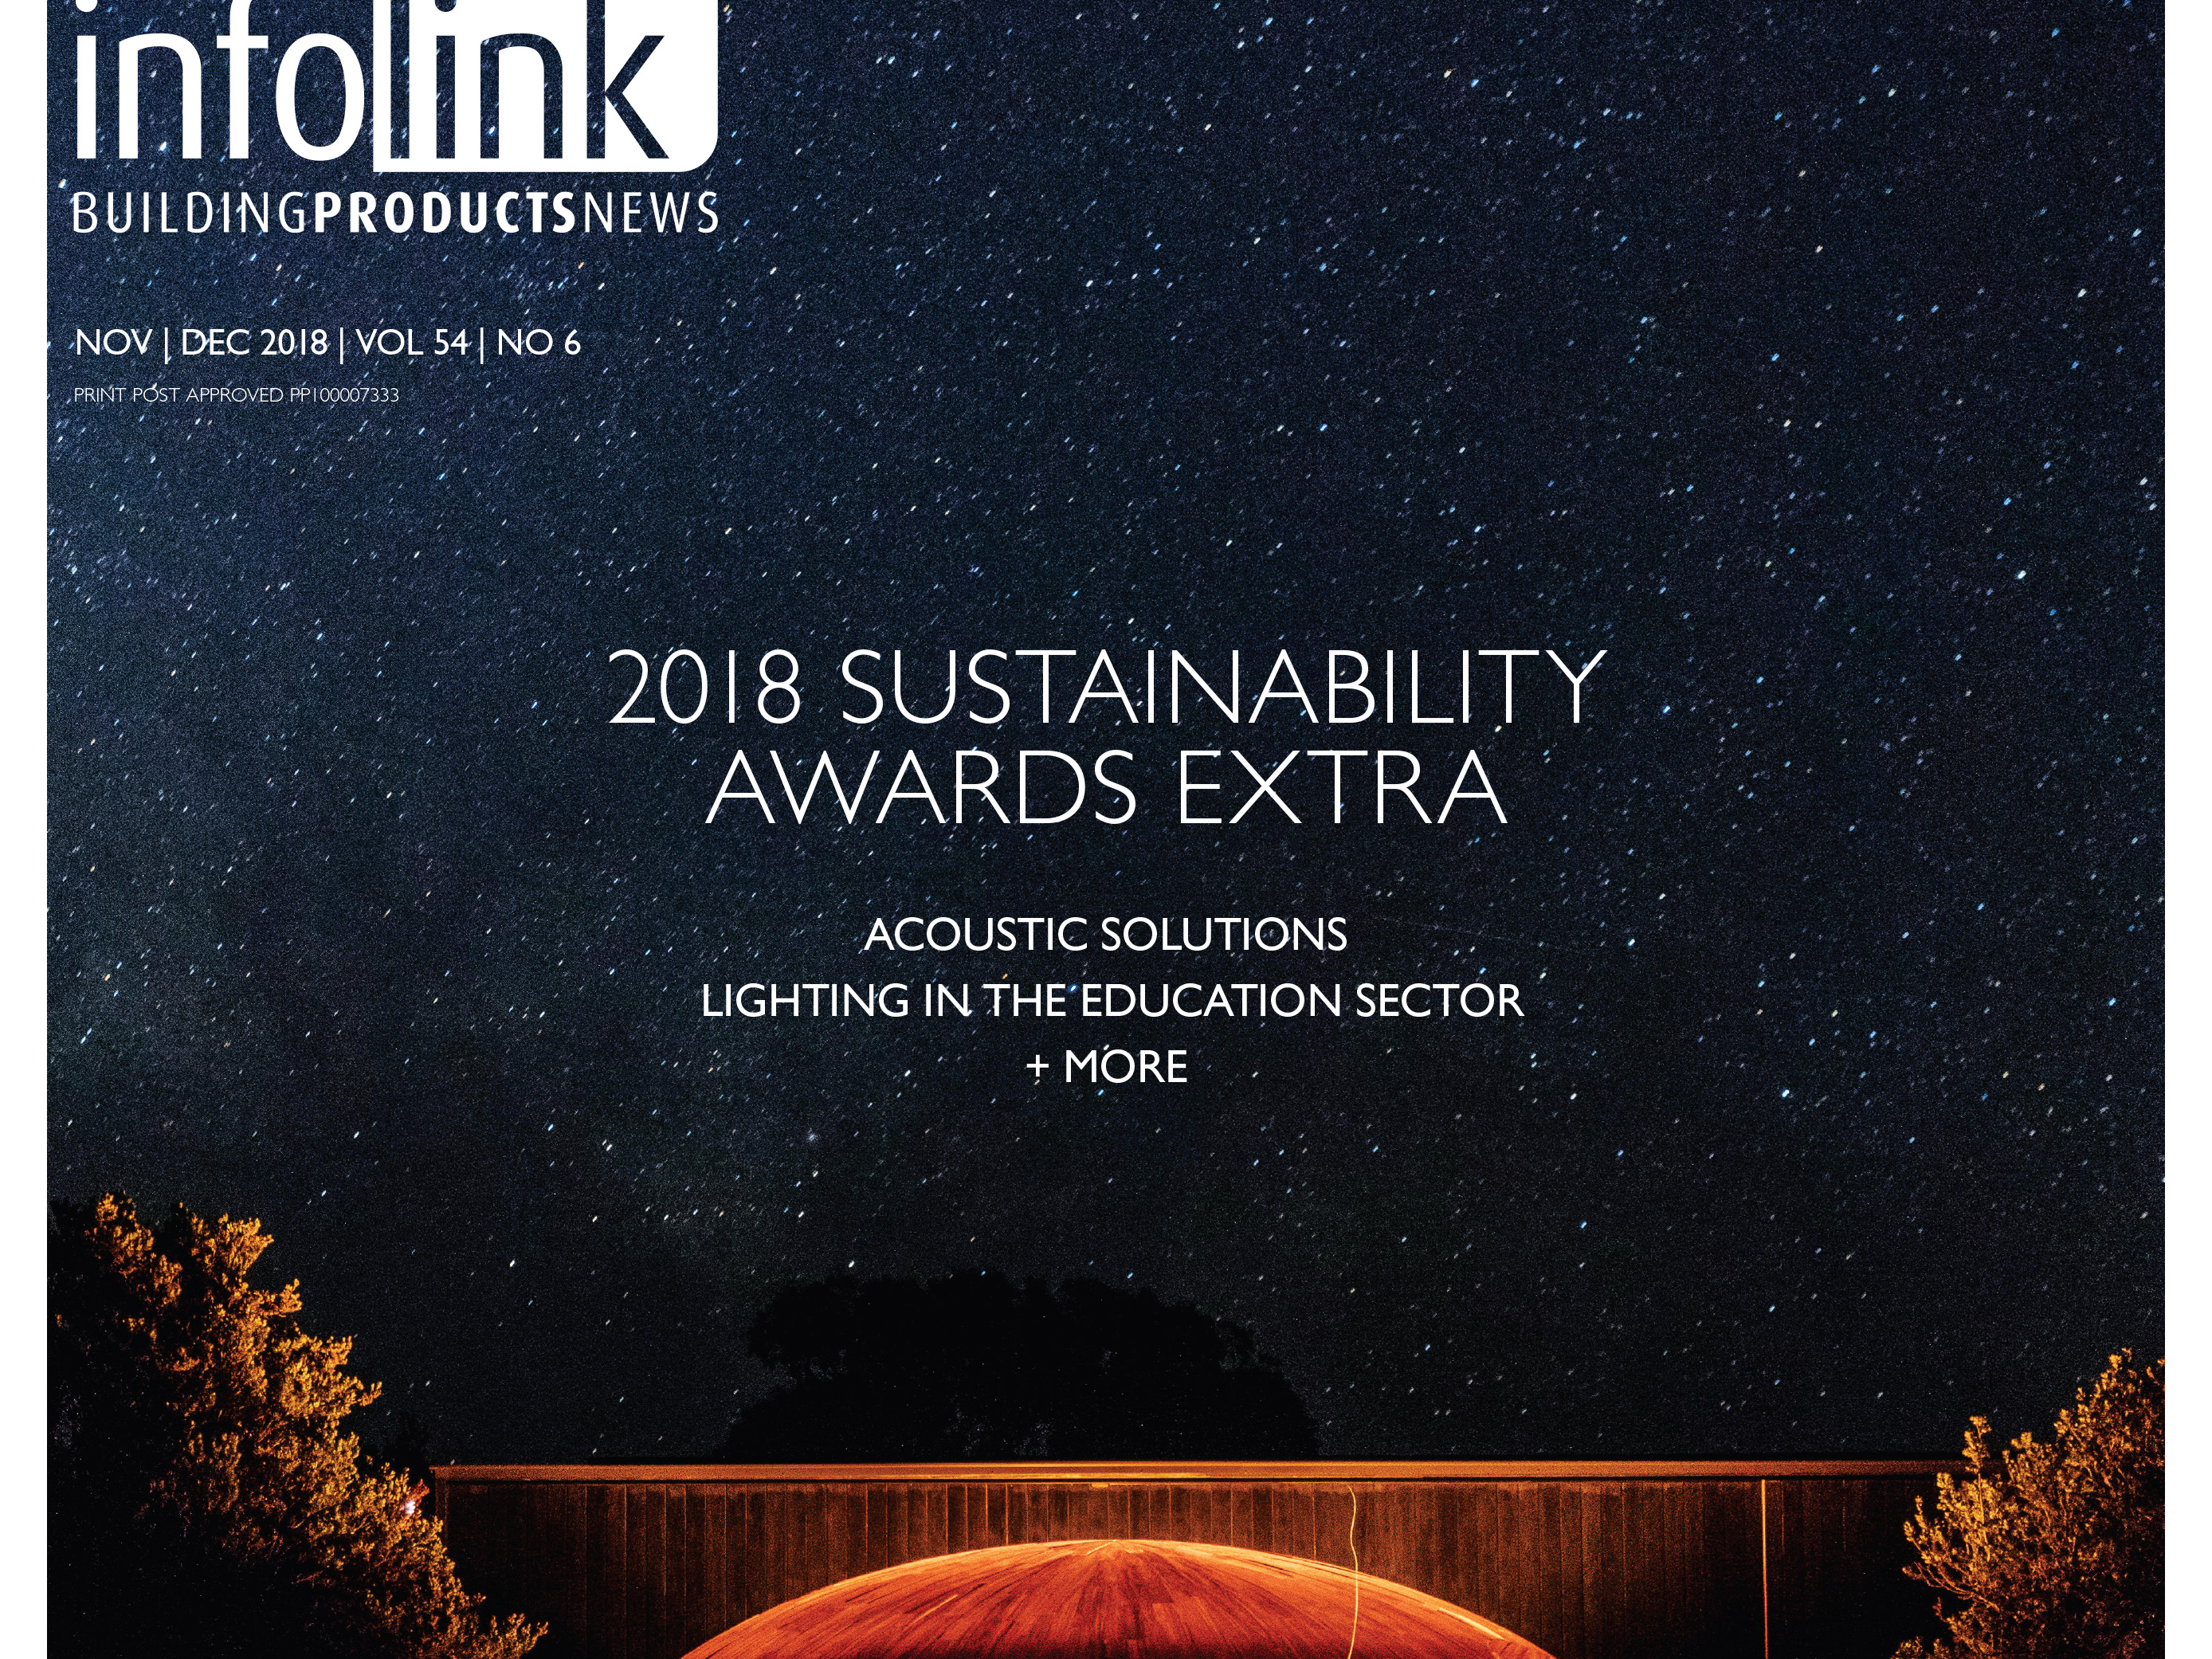 This year marks a milestone in many areas. One of those is our Sustainability Awards, which after 12 years of recognising and rewarding the AEC industry for it efforts, in 2018 have finally come of age.